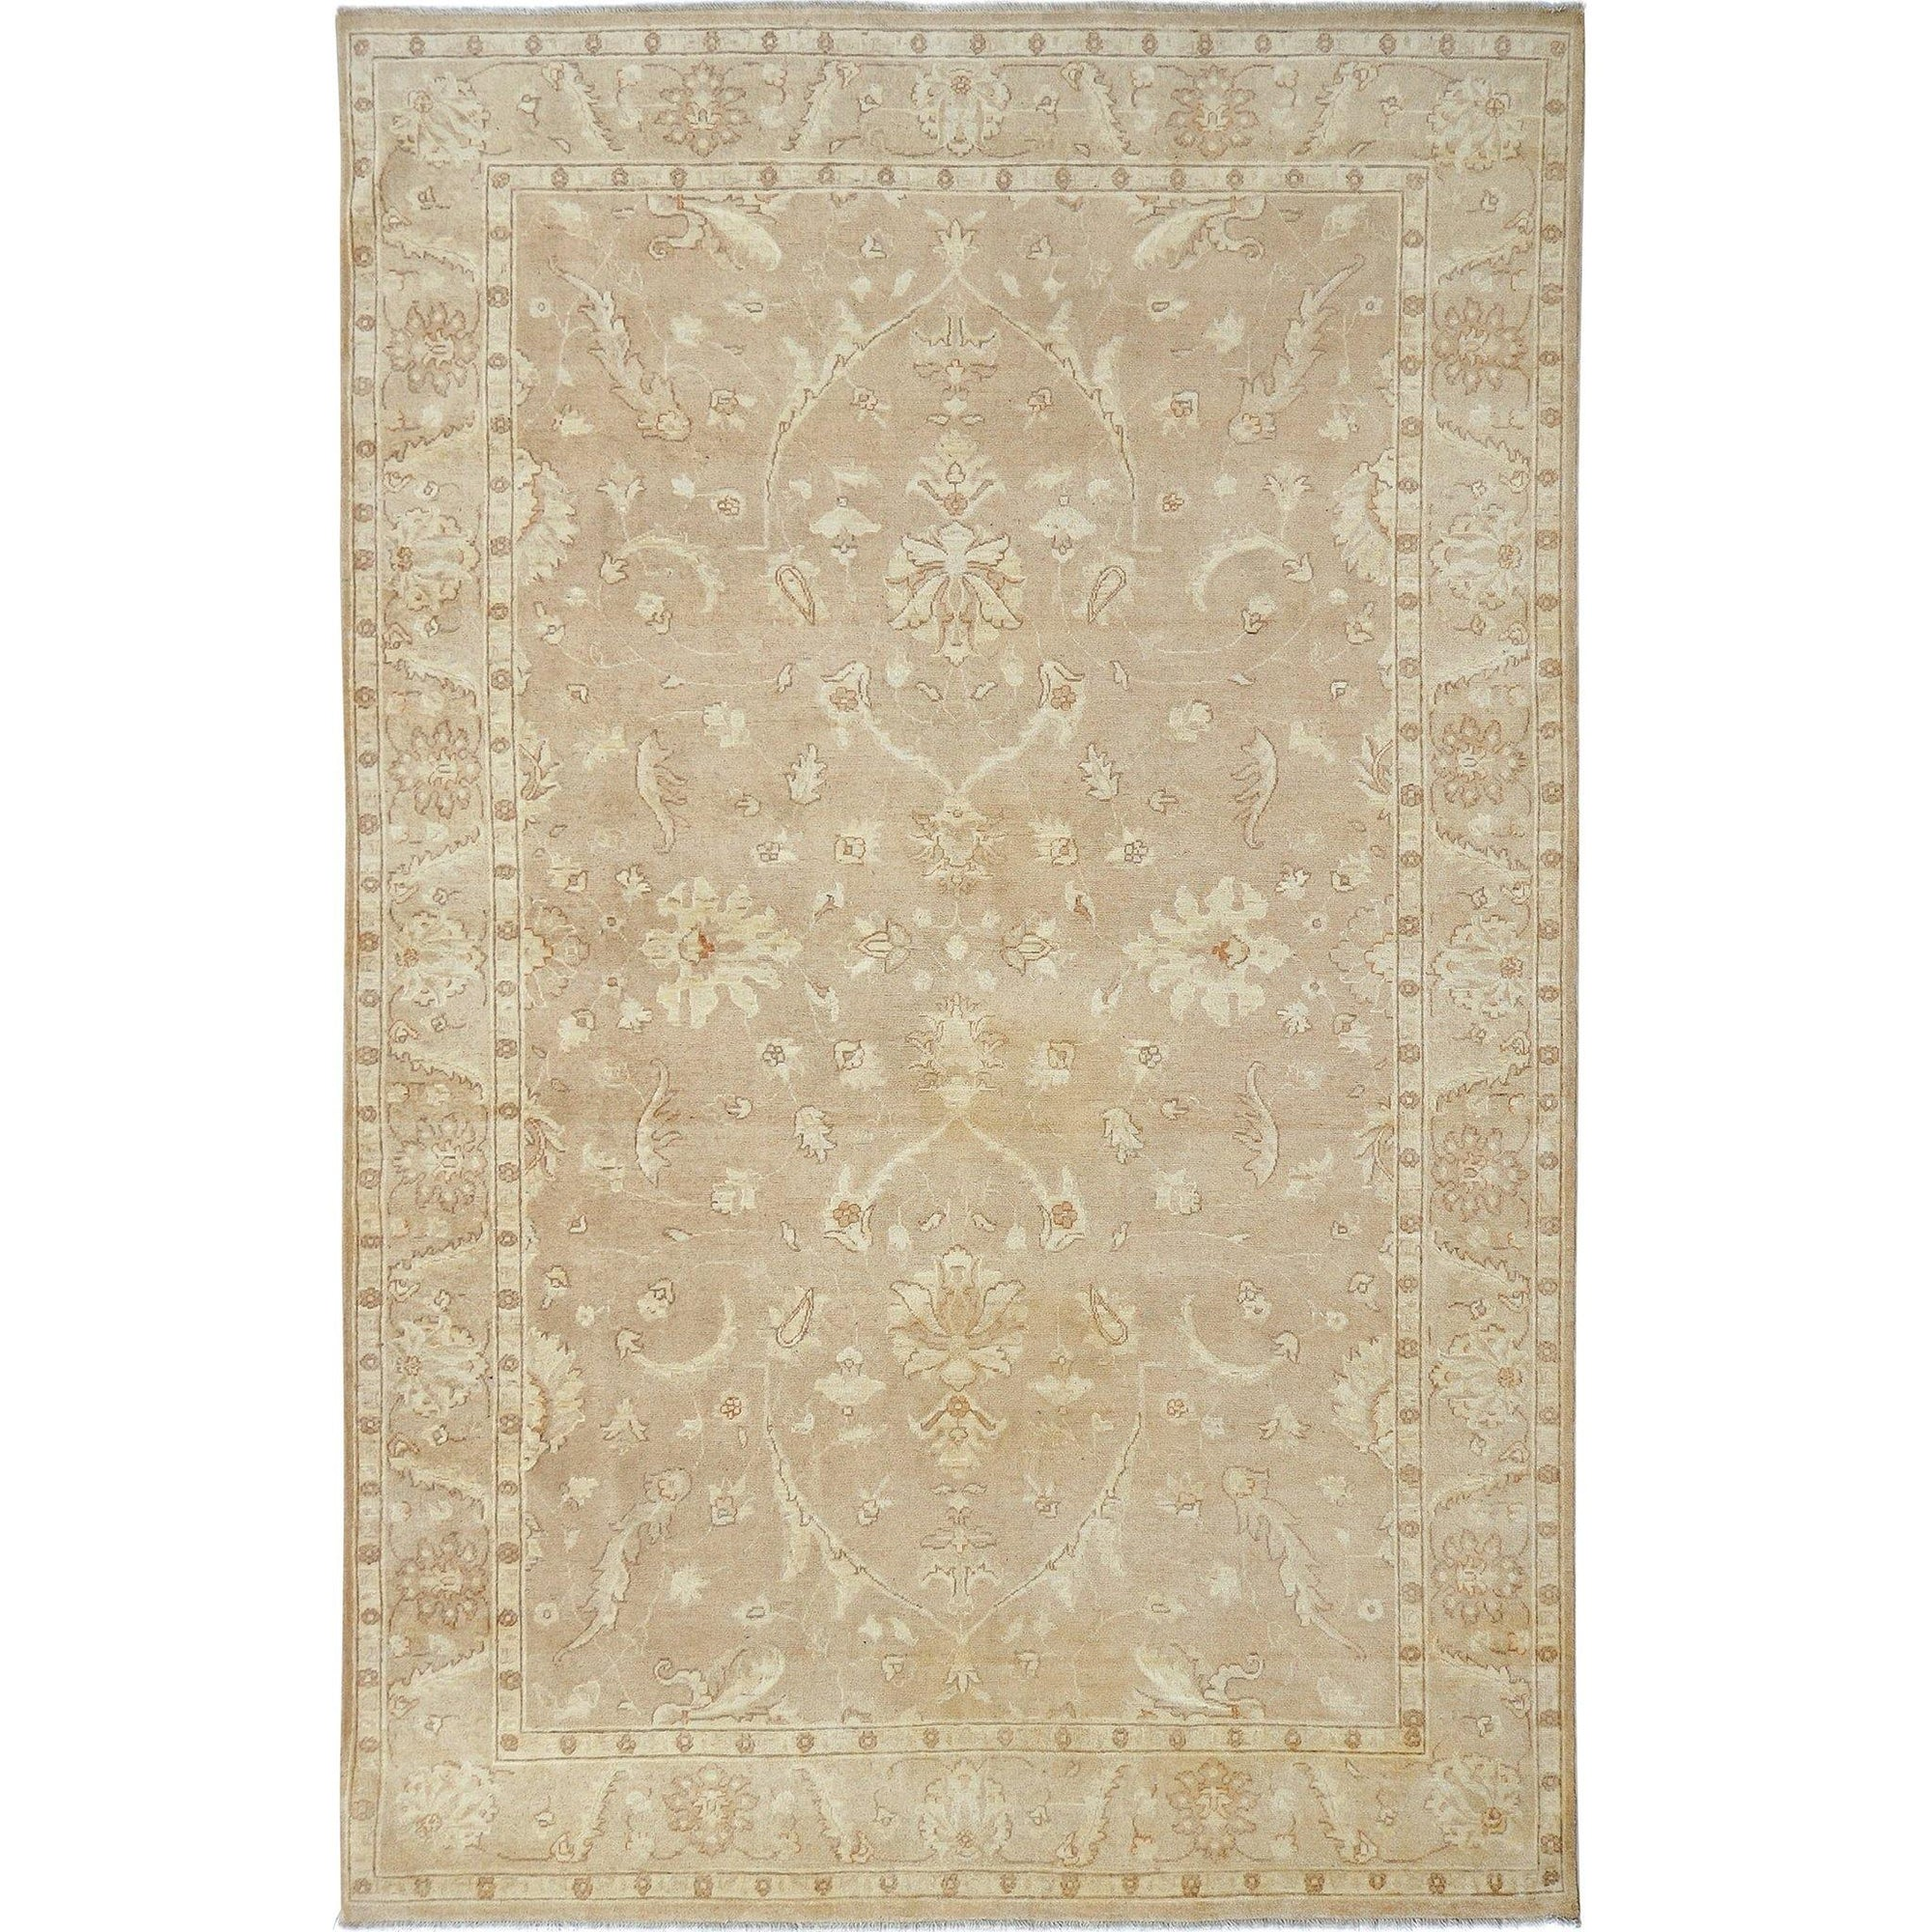 Fine Hand-knotted Colour Reform Wool Rug 219cm x 293cm Persian-Rug | House-of-Haghi | NewMarket | Auckland | NZ | Handmade Persian Rugs | Hand Knotted Persian Rugs